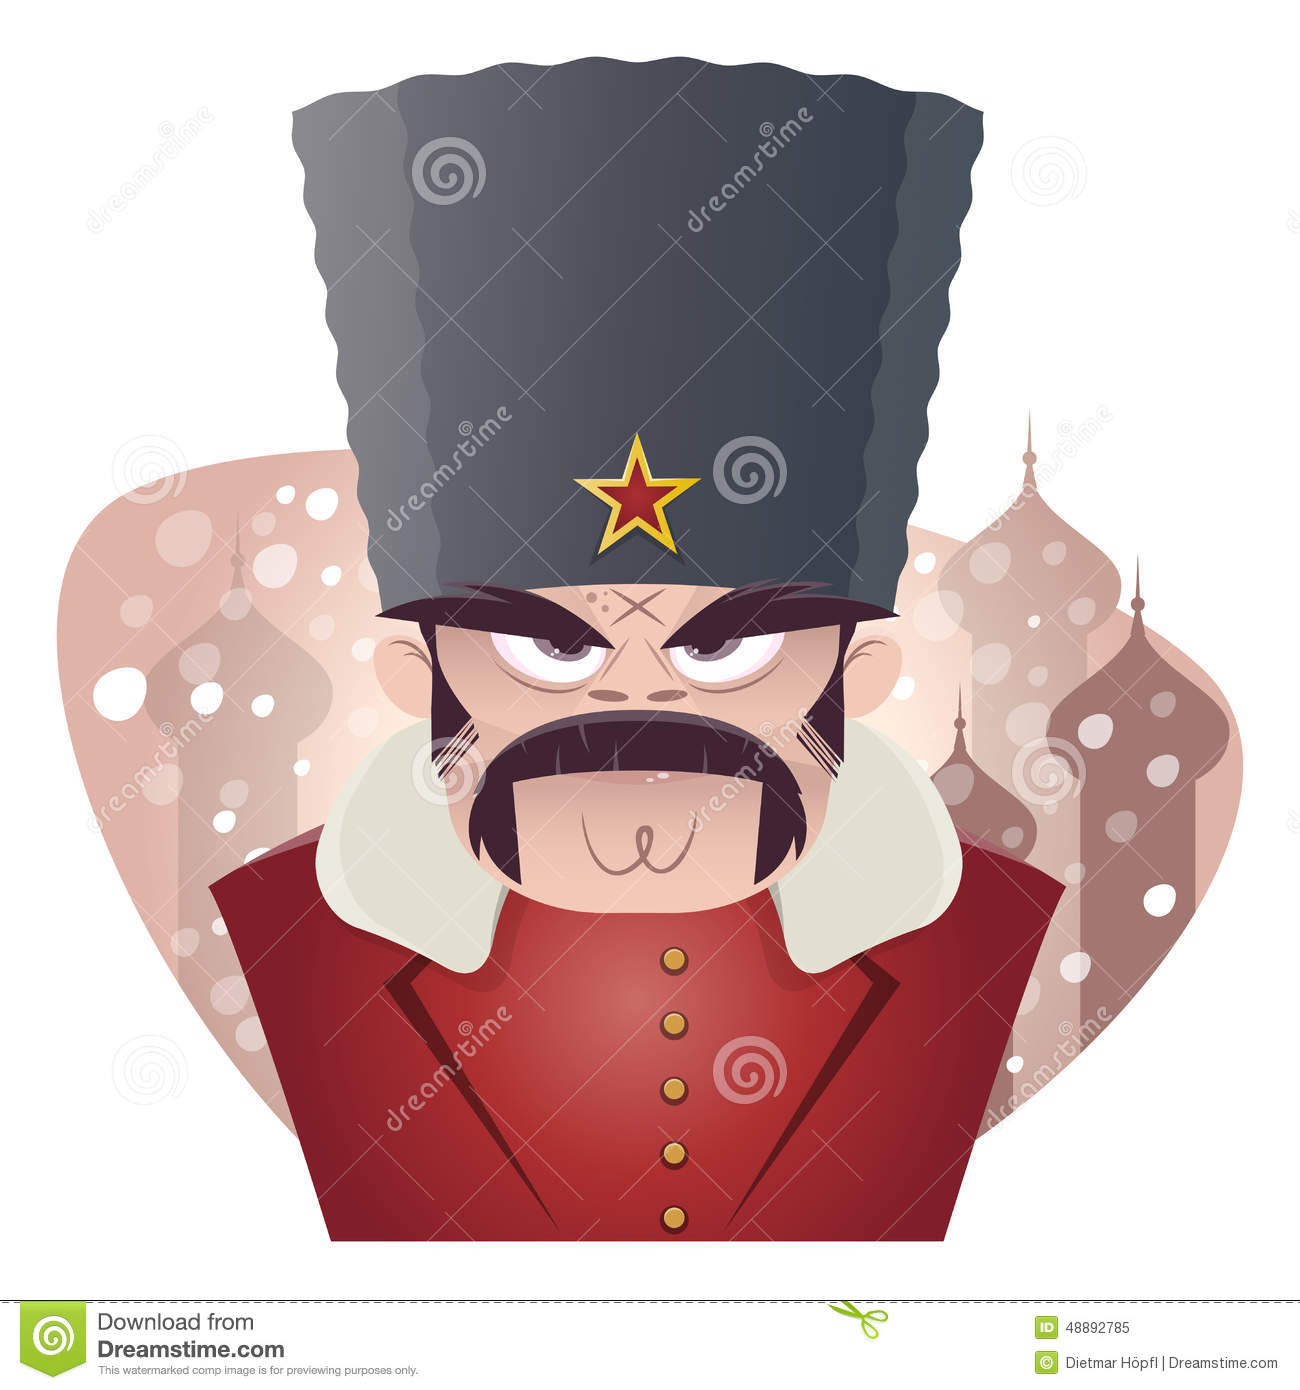 Pinkie Quinn S A Big Pony 304746003 likewise How To Draw My Grumpy Sister Delia furthermore PivotDraws Boop Ask The Storybots 647132172 also Stock Illustration Angry Russian Soviet Man Illustration Image48892785 likewise PivotDraws Boop Ask The Storybots 647132172. on grumpy drawings